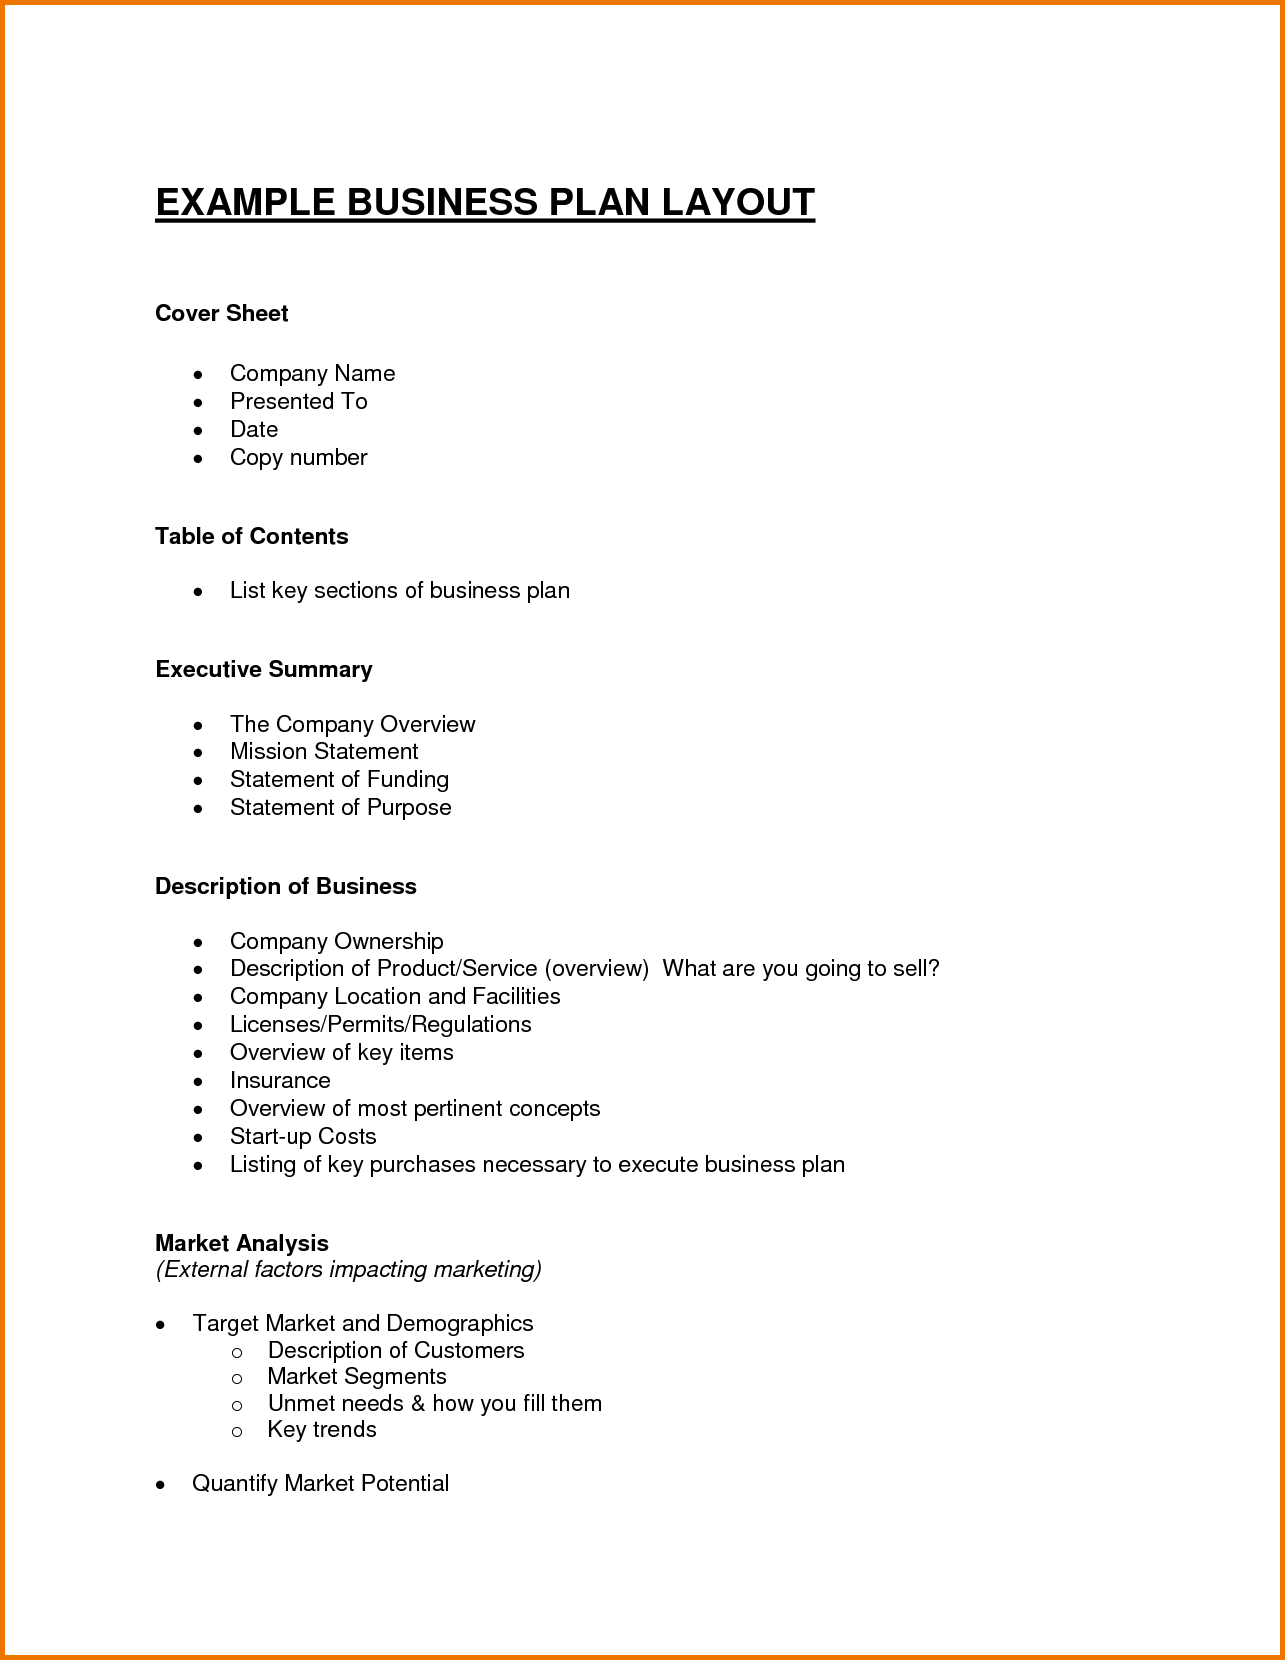 Business plan format necmgisk business plan format madrichimfo Gallery